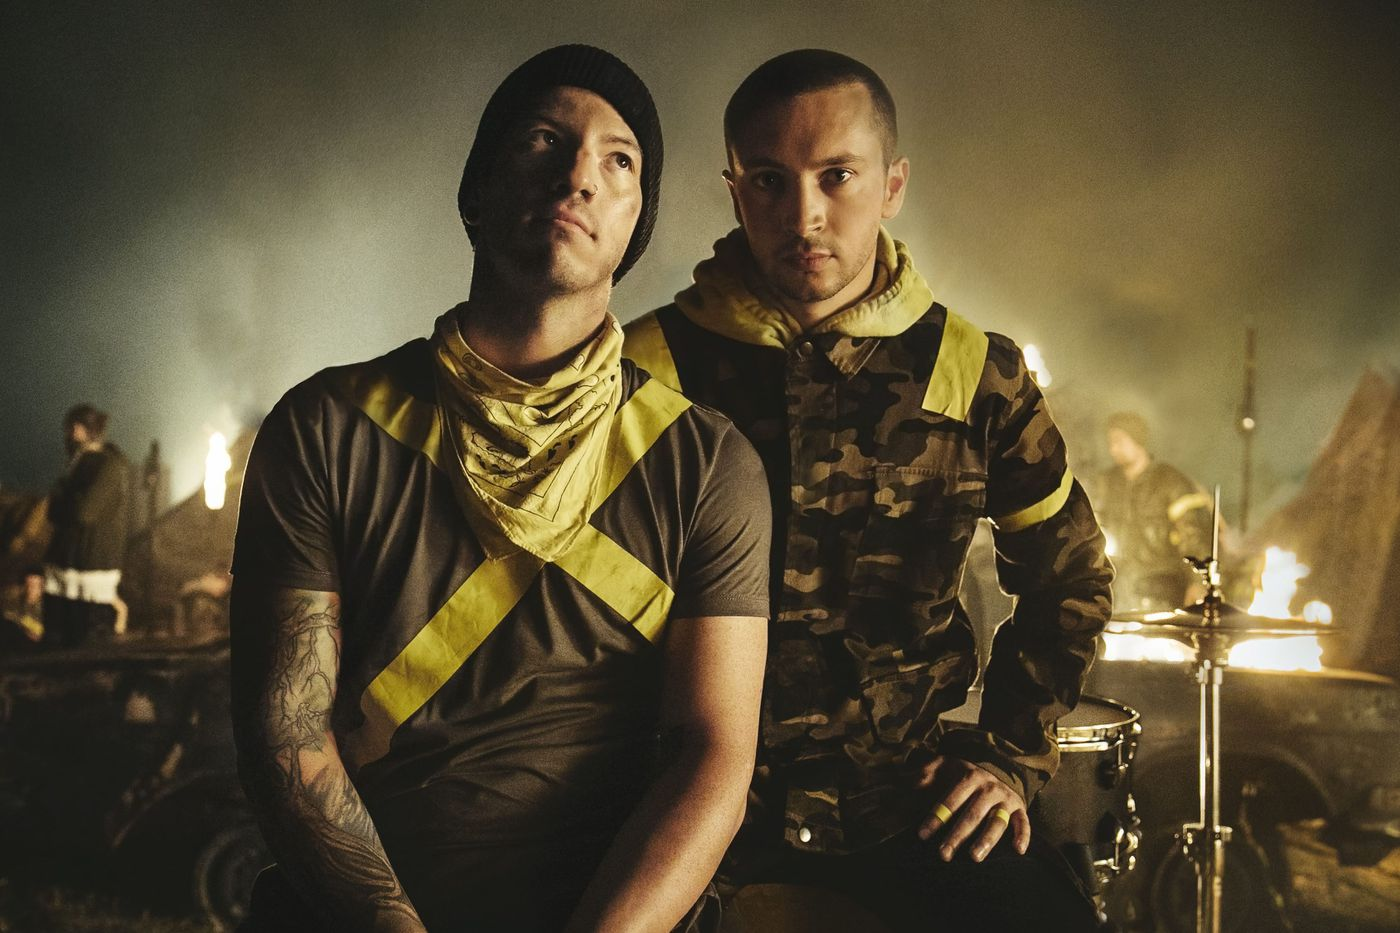 Twenty One Pilots put on a mind-boggling show at the Wells Fargo Center